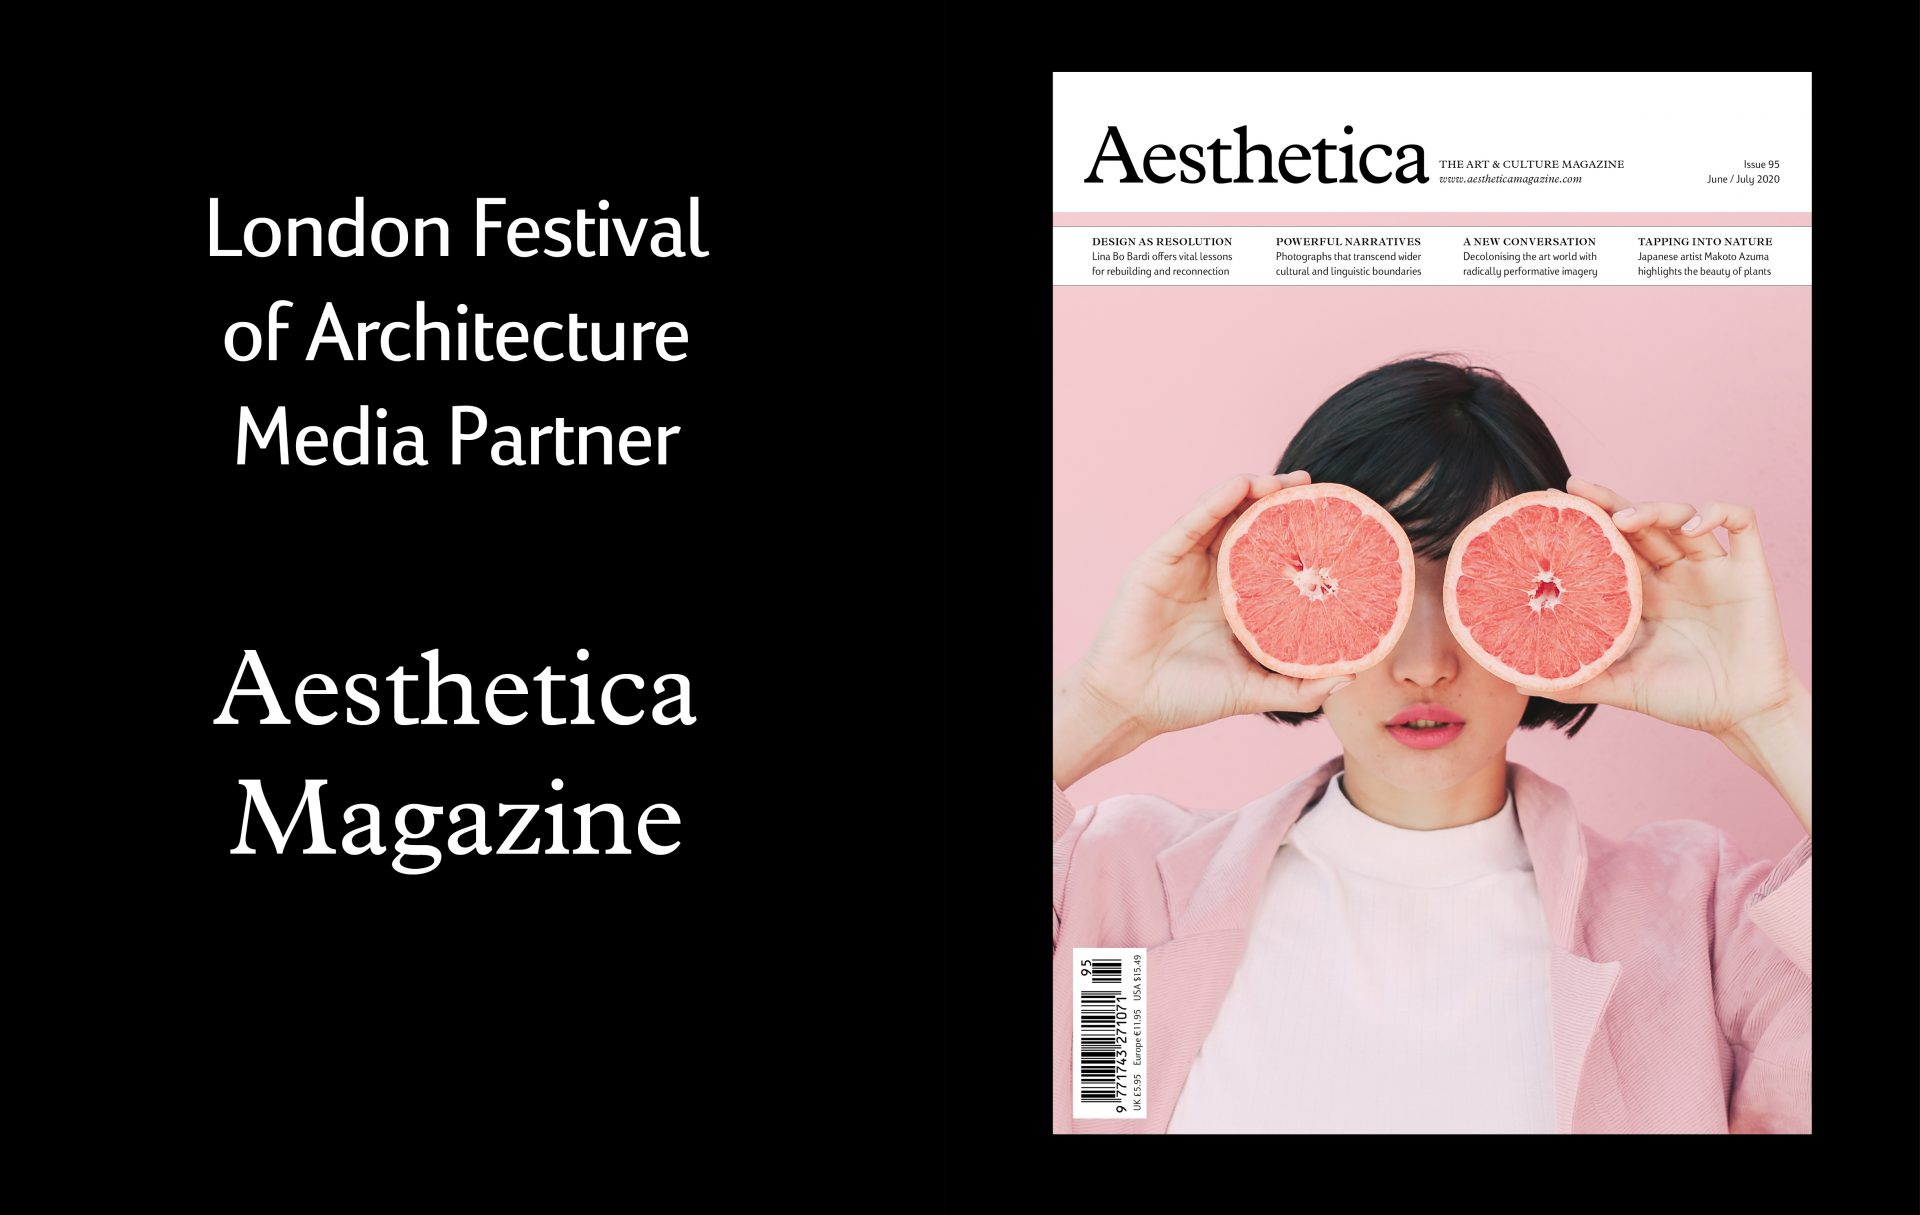 Discover the latest from the world of architecture & design with Aesthetica